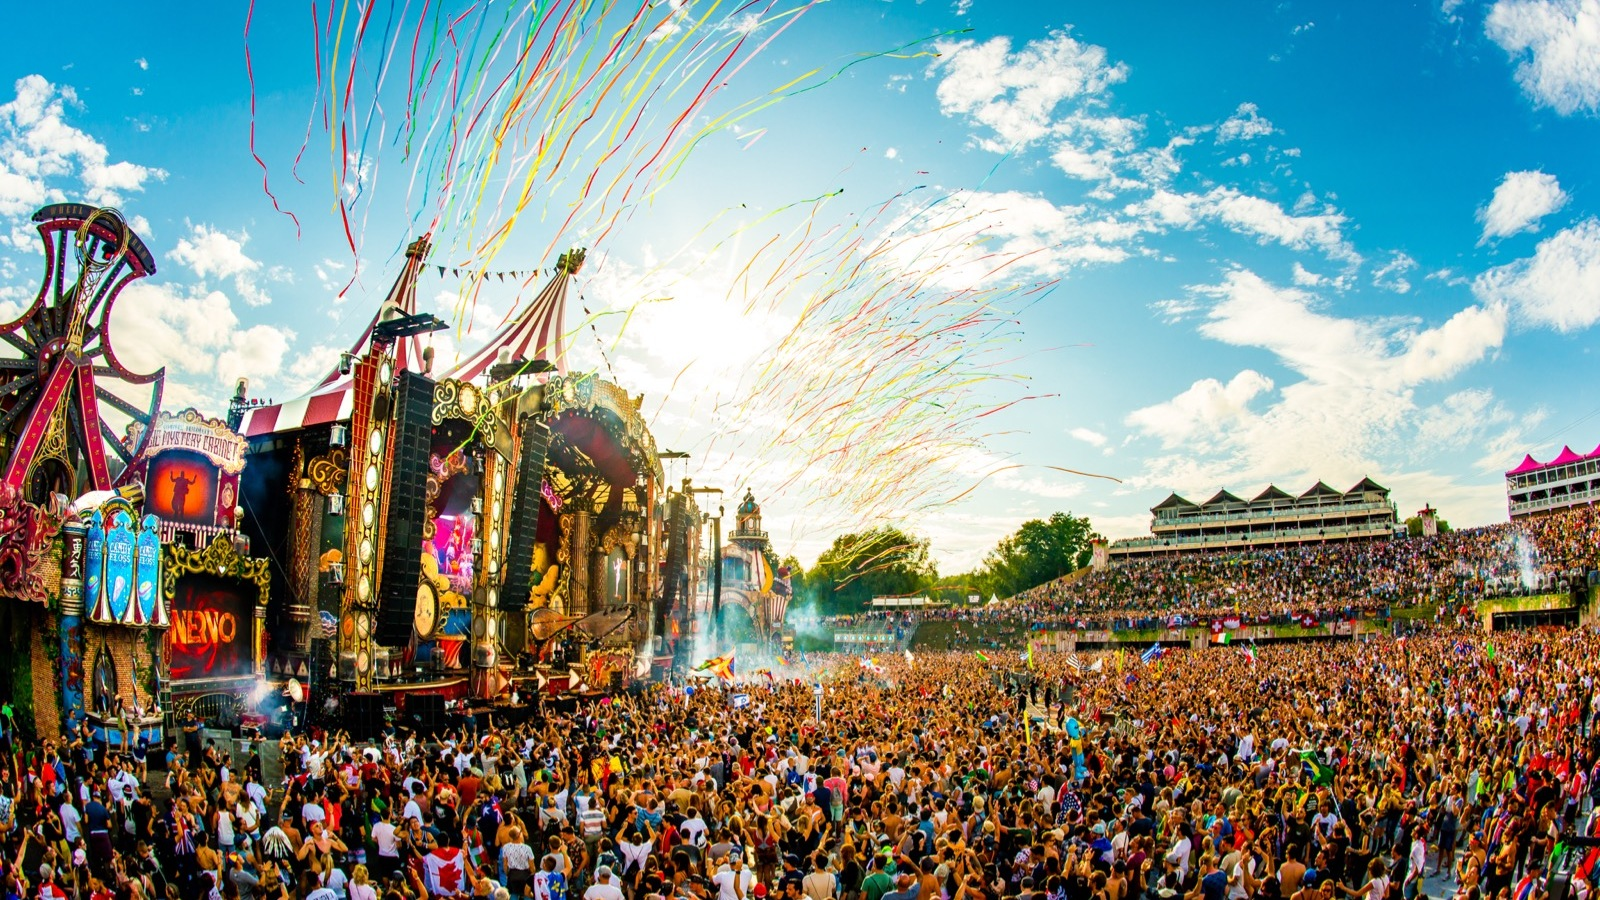 Tomorrowland 2017 Amicorum Spectaculum